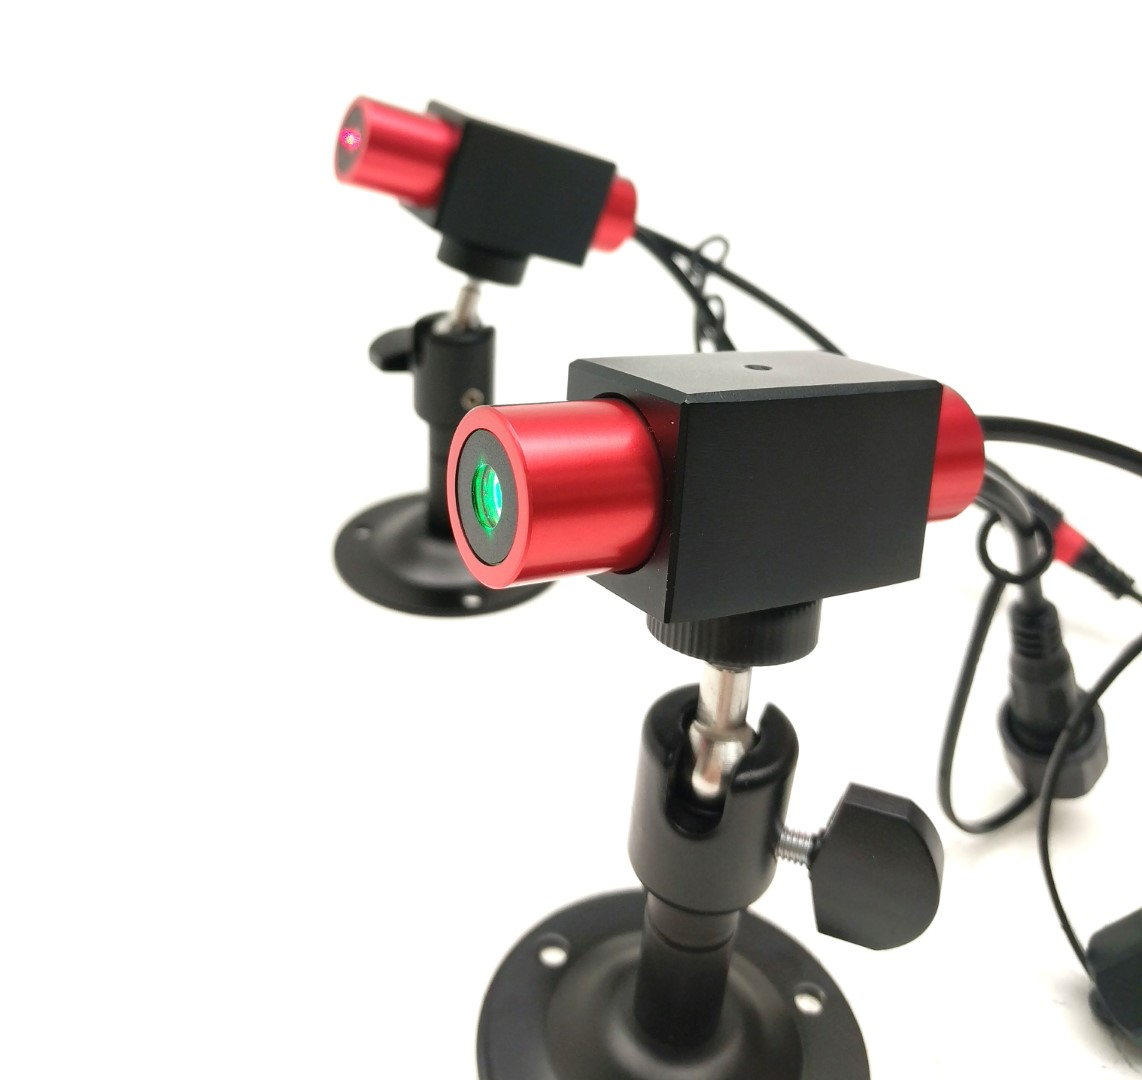 20 mW 635 nm Red Premium Structured Cross Laser, 60° fan angle, adjustable focus, TTL+, Sealed IP67